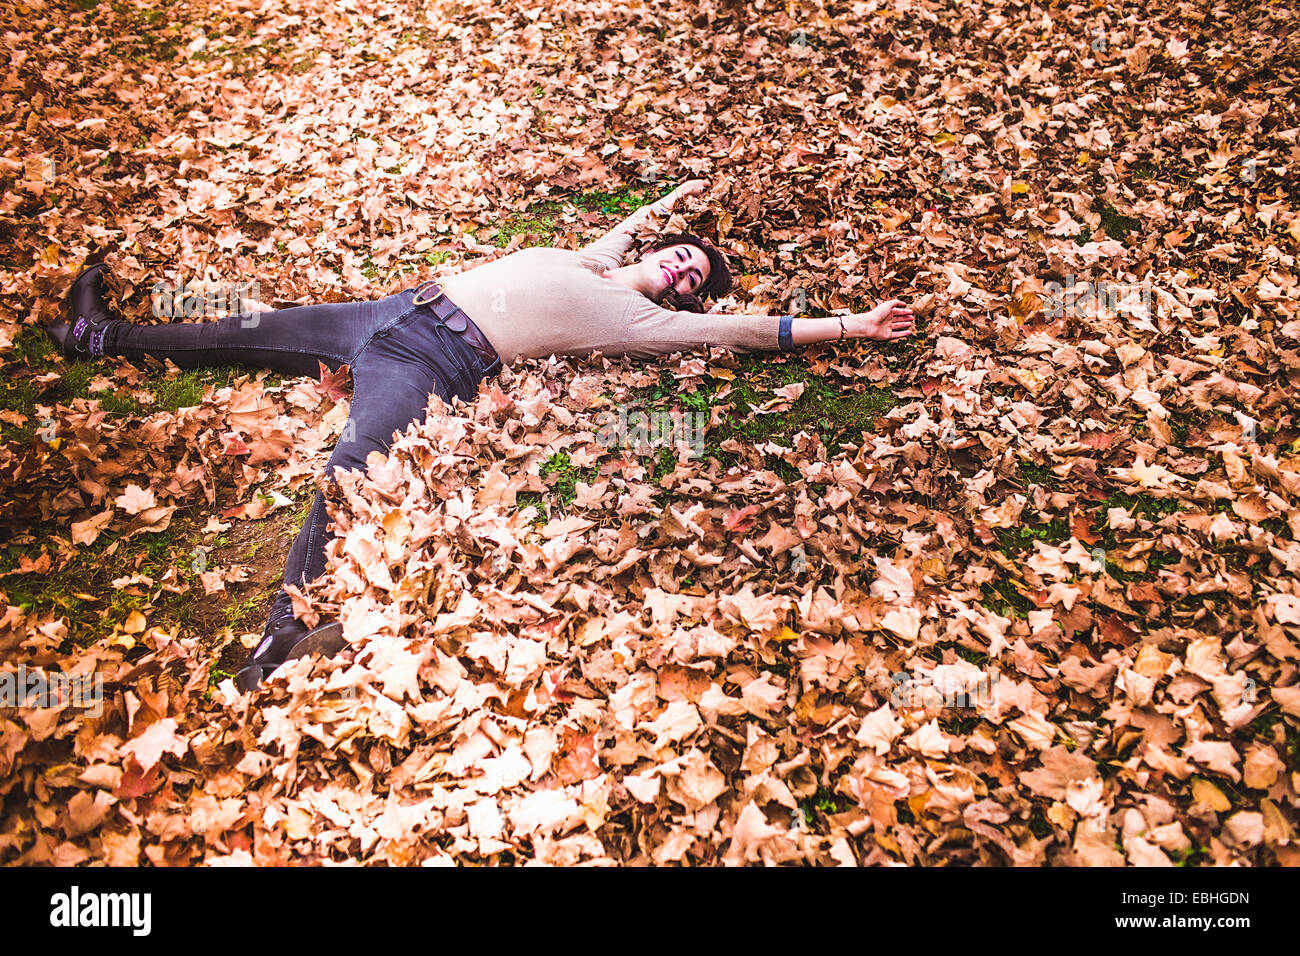 Overhead view of young woman lying on autumn leaves avec bras et jambes tendus Photo Stock